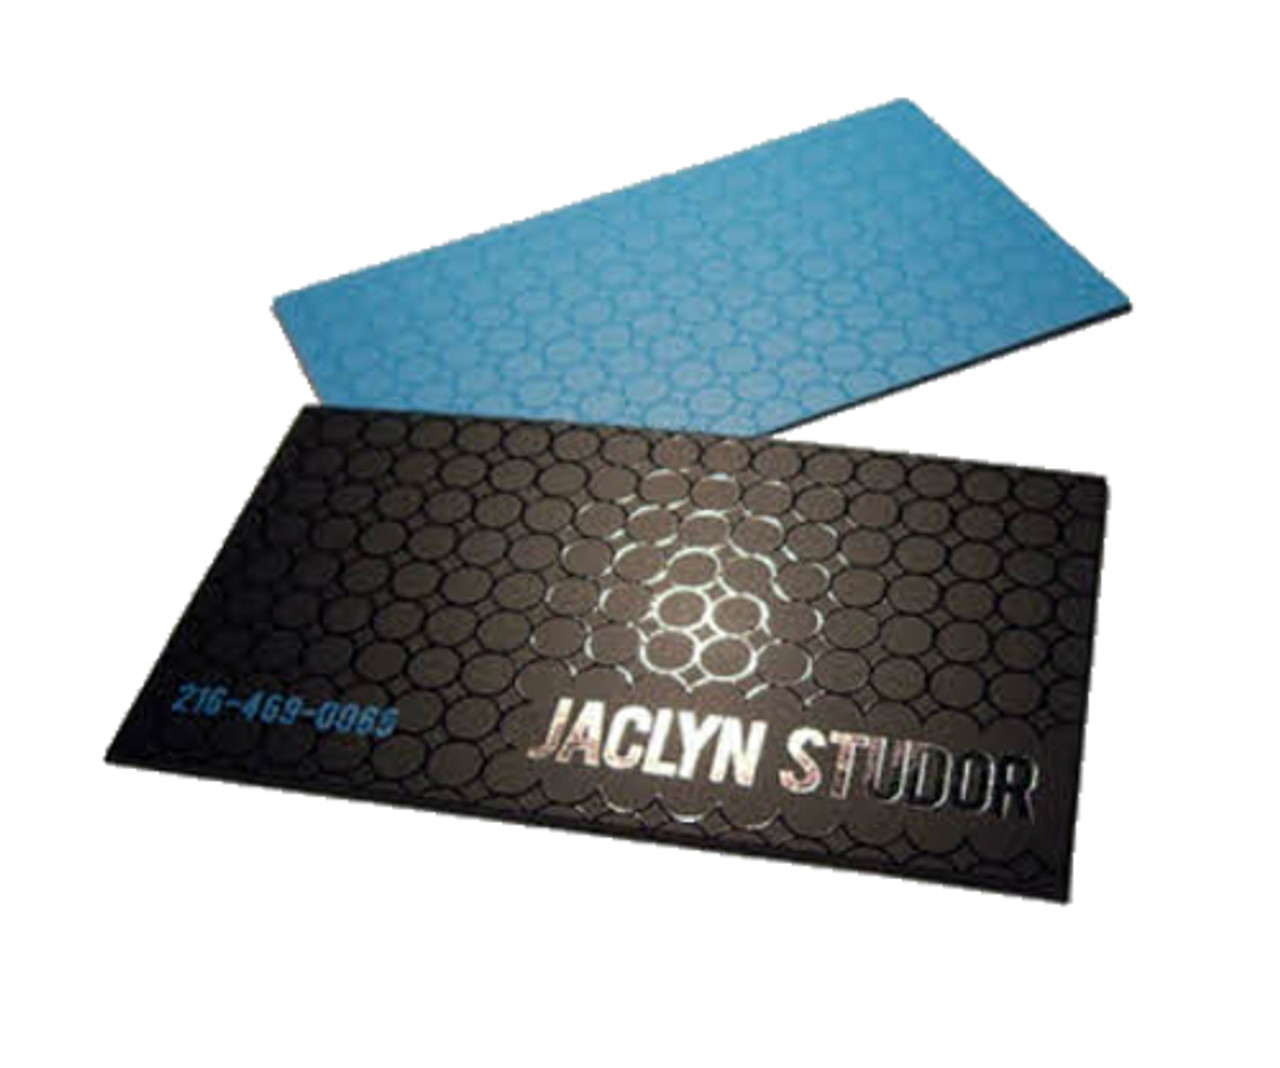 Premium Spot Uv Business Cards Spot Uv Business Cards Silk